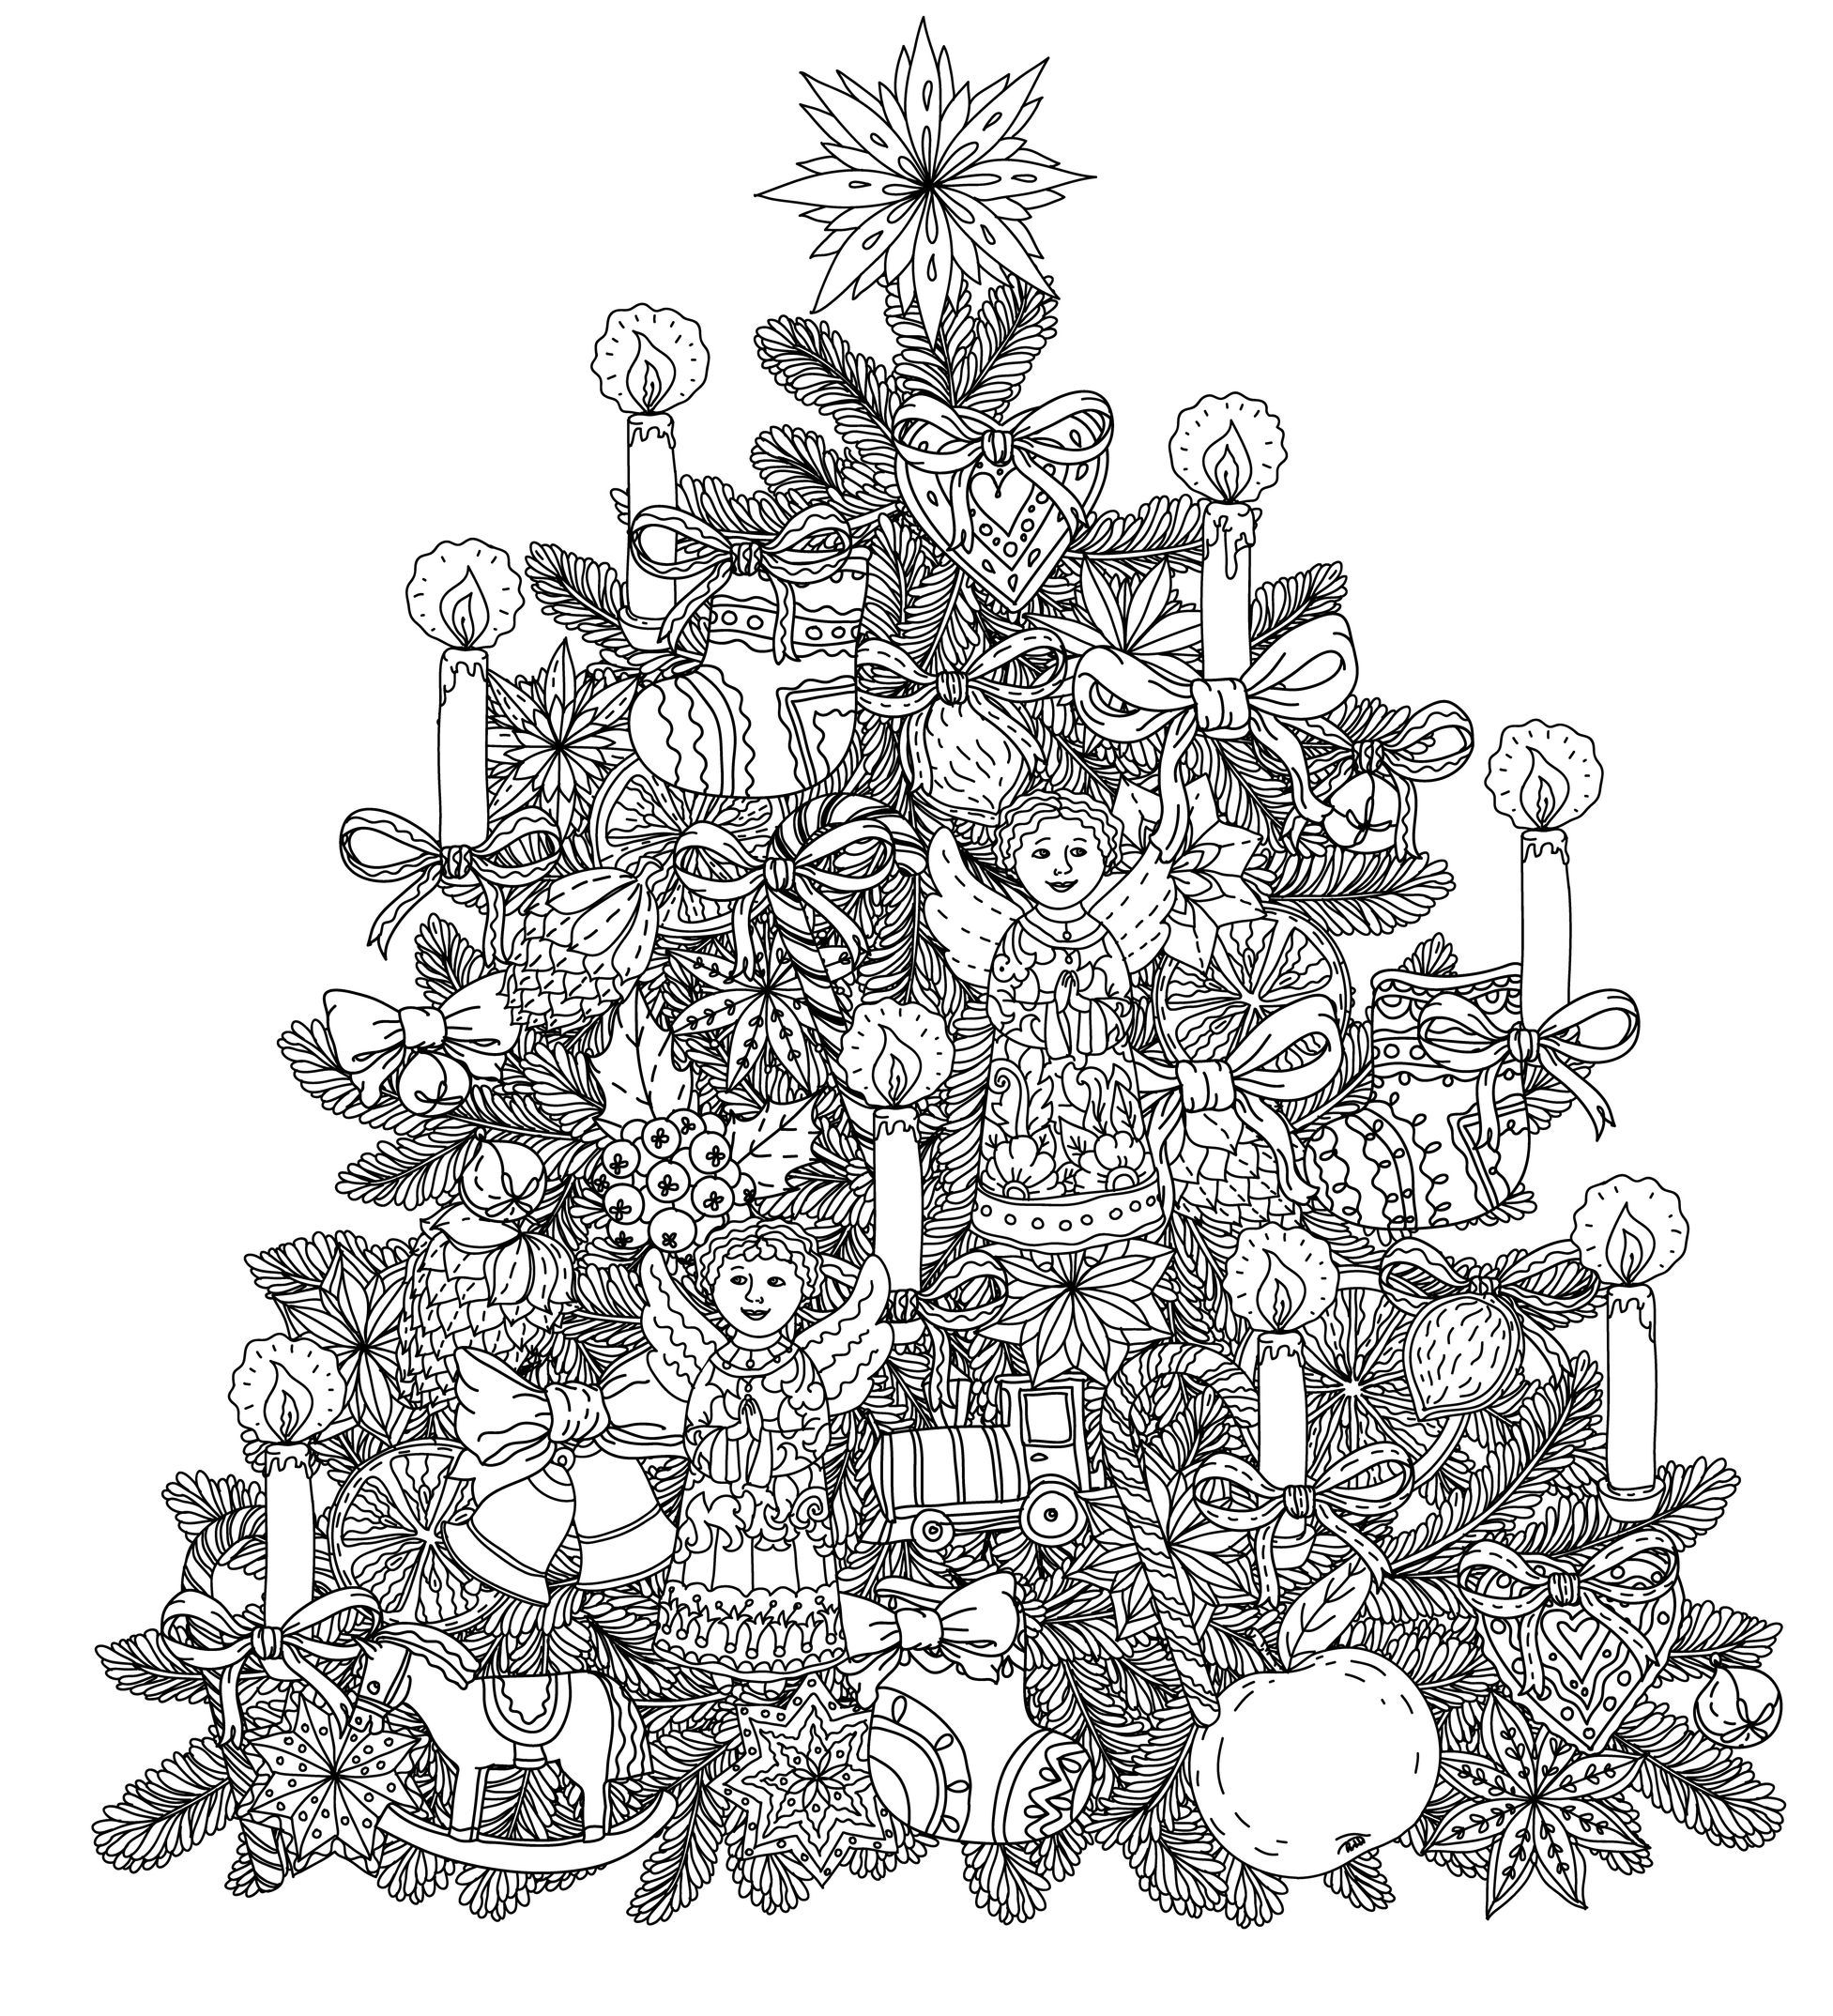 Christmas Coloring Pages Christmas Tree Decorations Christmas Tree Coloring Page Tree Coloring Page Printable Christmas Coloring Pages